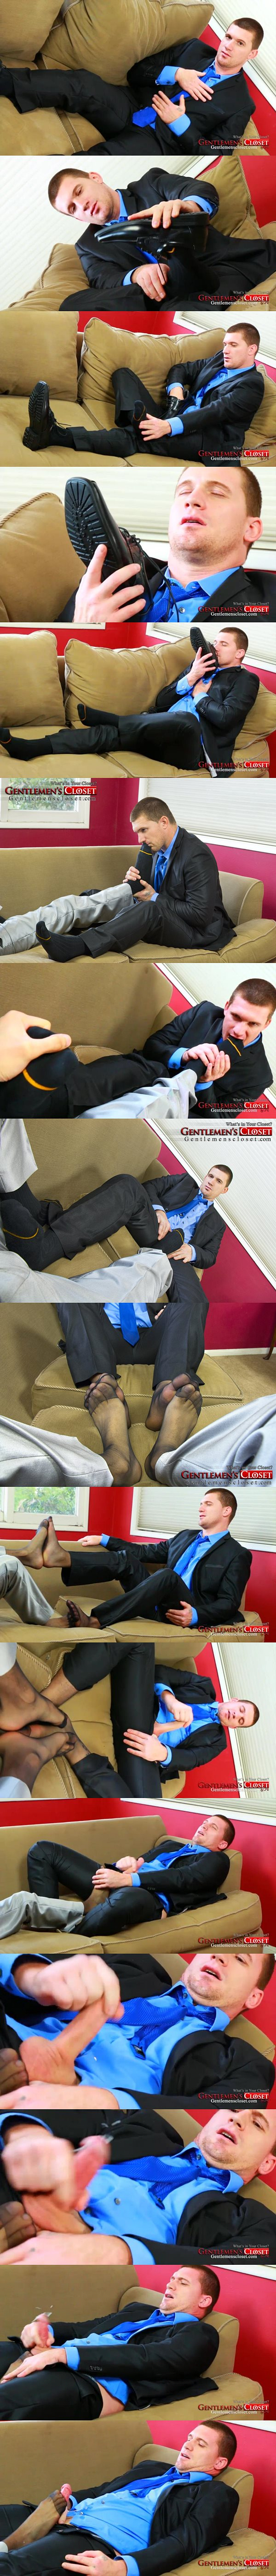 Handsome straight dude Victor's POV foot session and jackoff in sheer socks at Gentlemenscloset 02